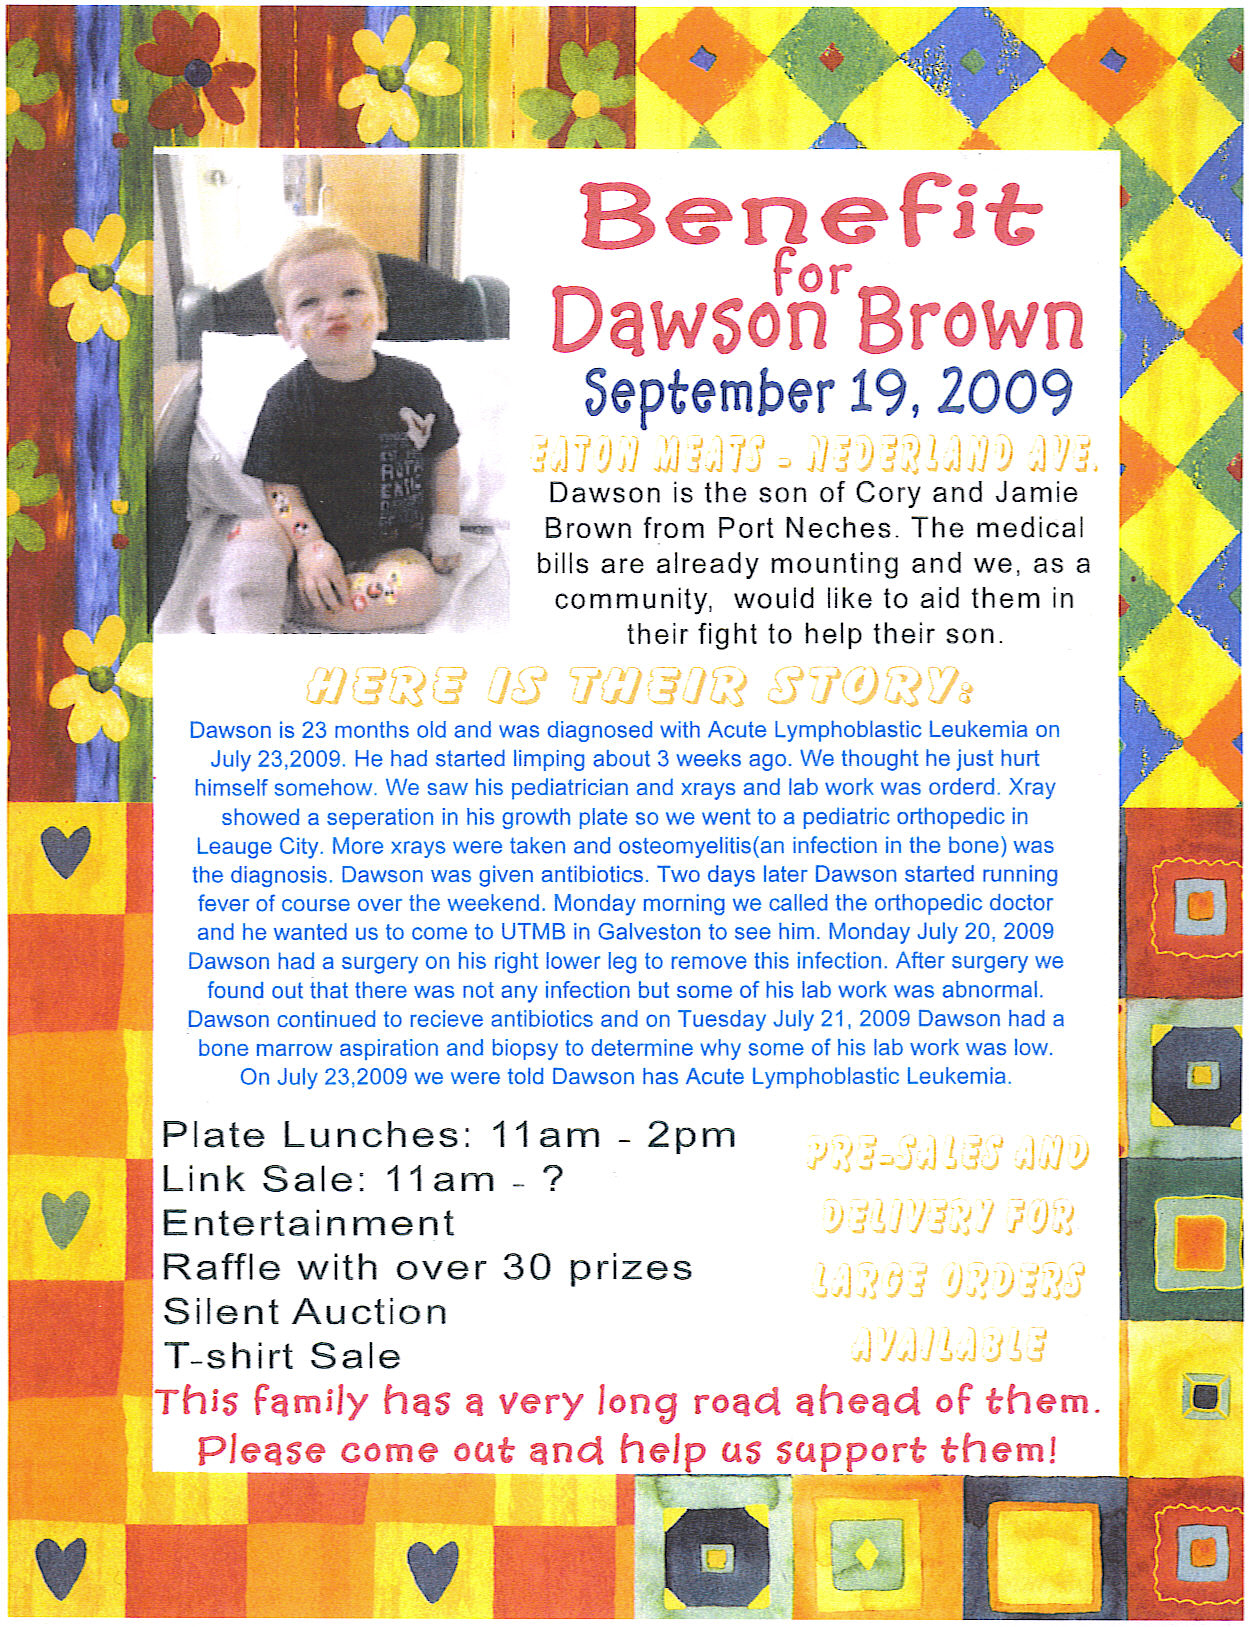 dawson_brown_benefit_flyer.jpg